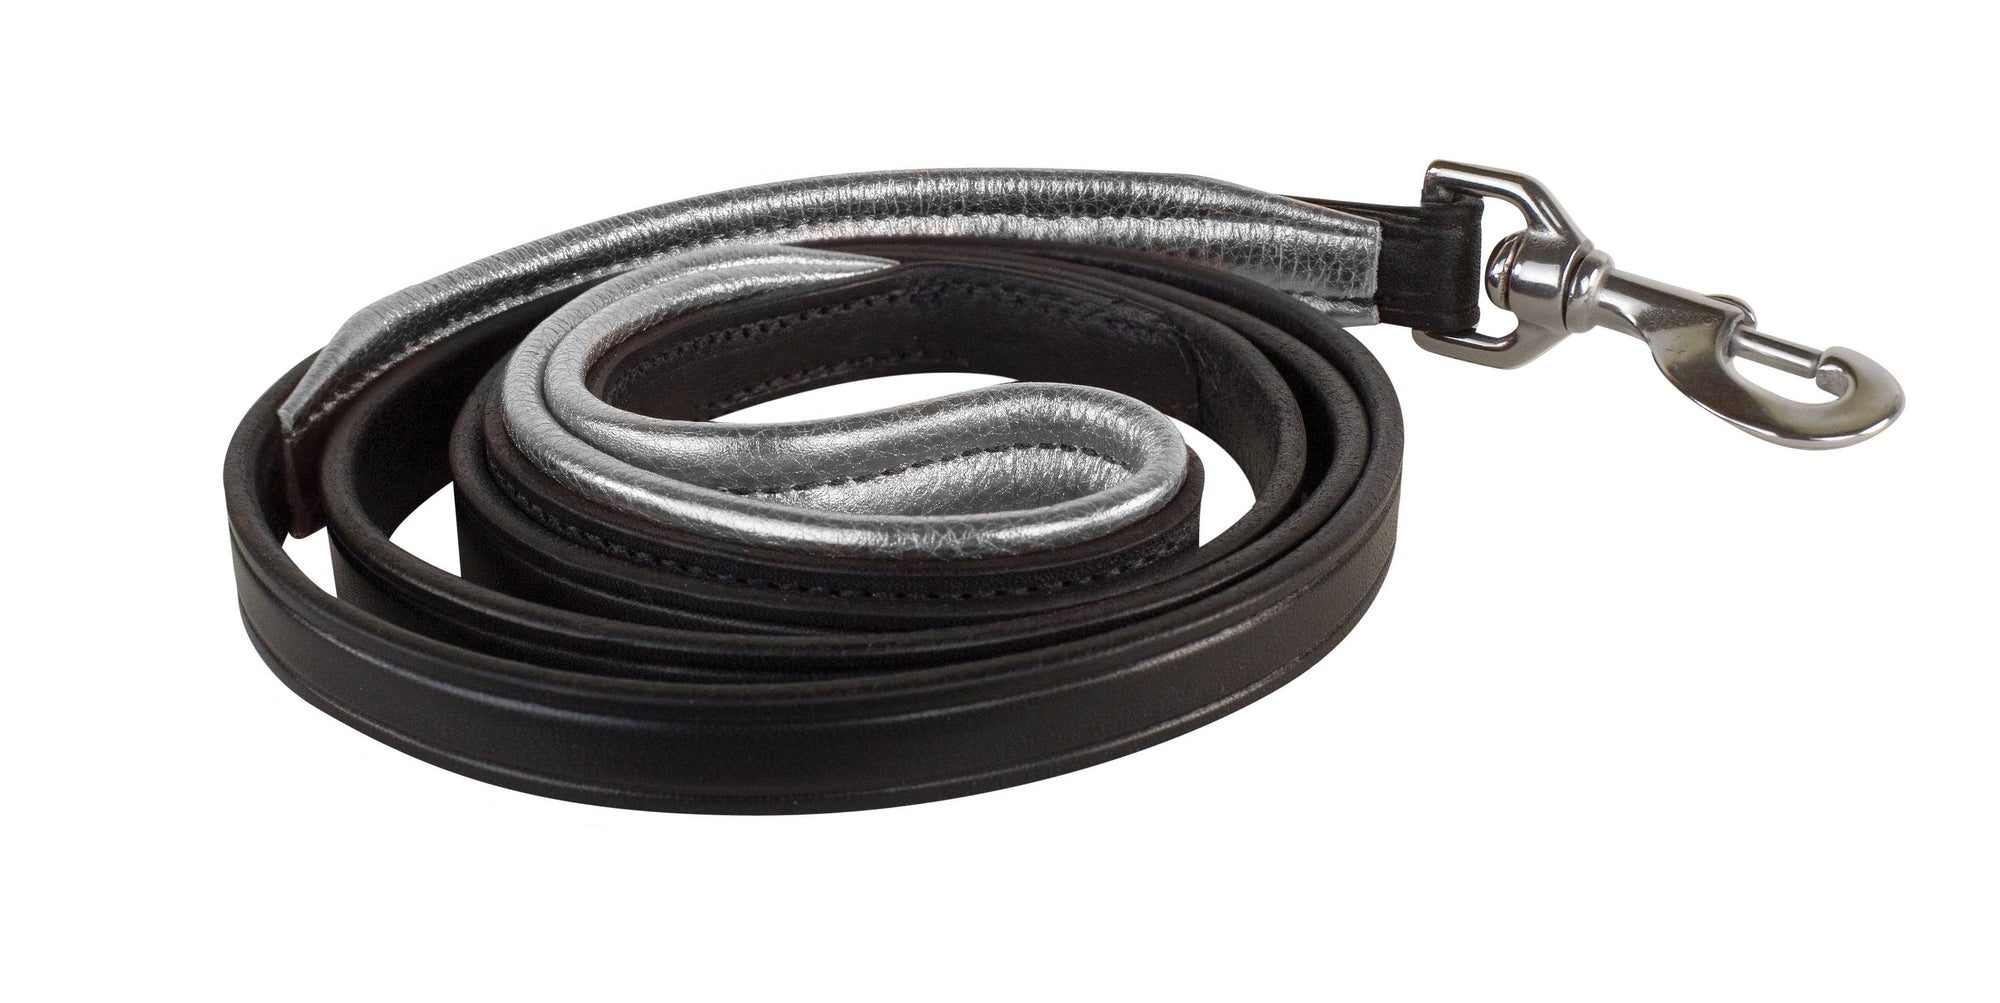 "Perri's Leather 1/2"" Padded Leather Dog Leash_1"